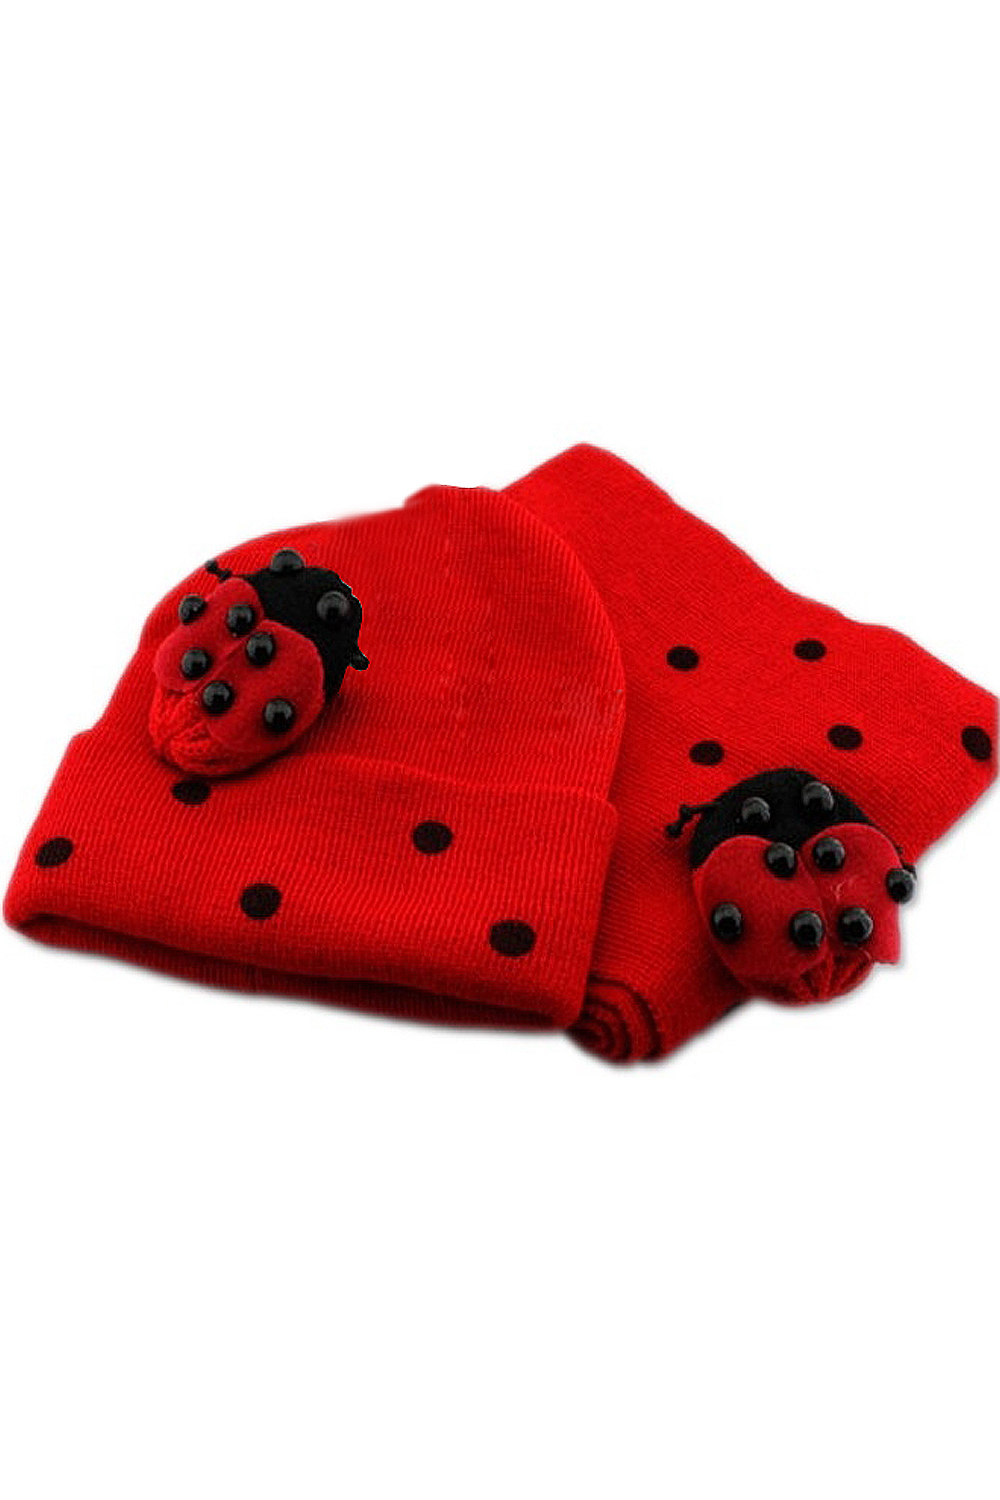 KEOL Best Sale Red Baby Boy Girl Toddler Winter Ladybird Ladybug Hat and Scarf Set